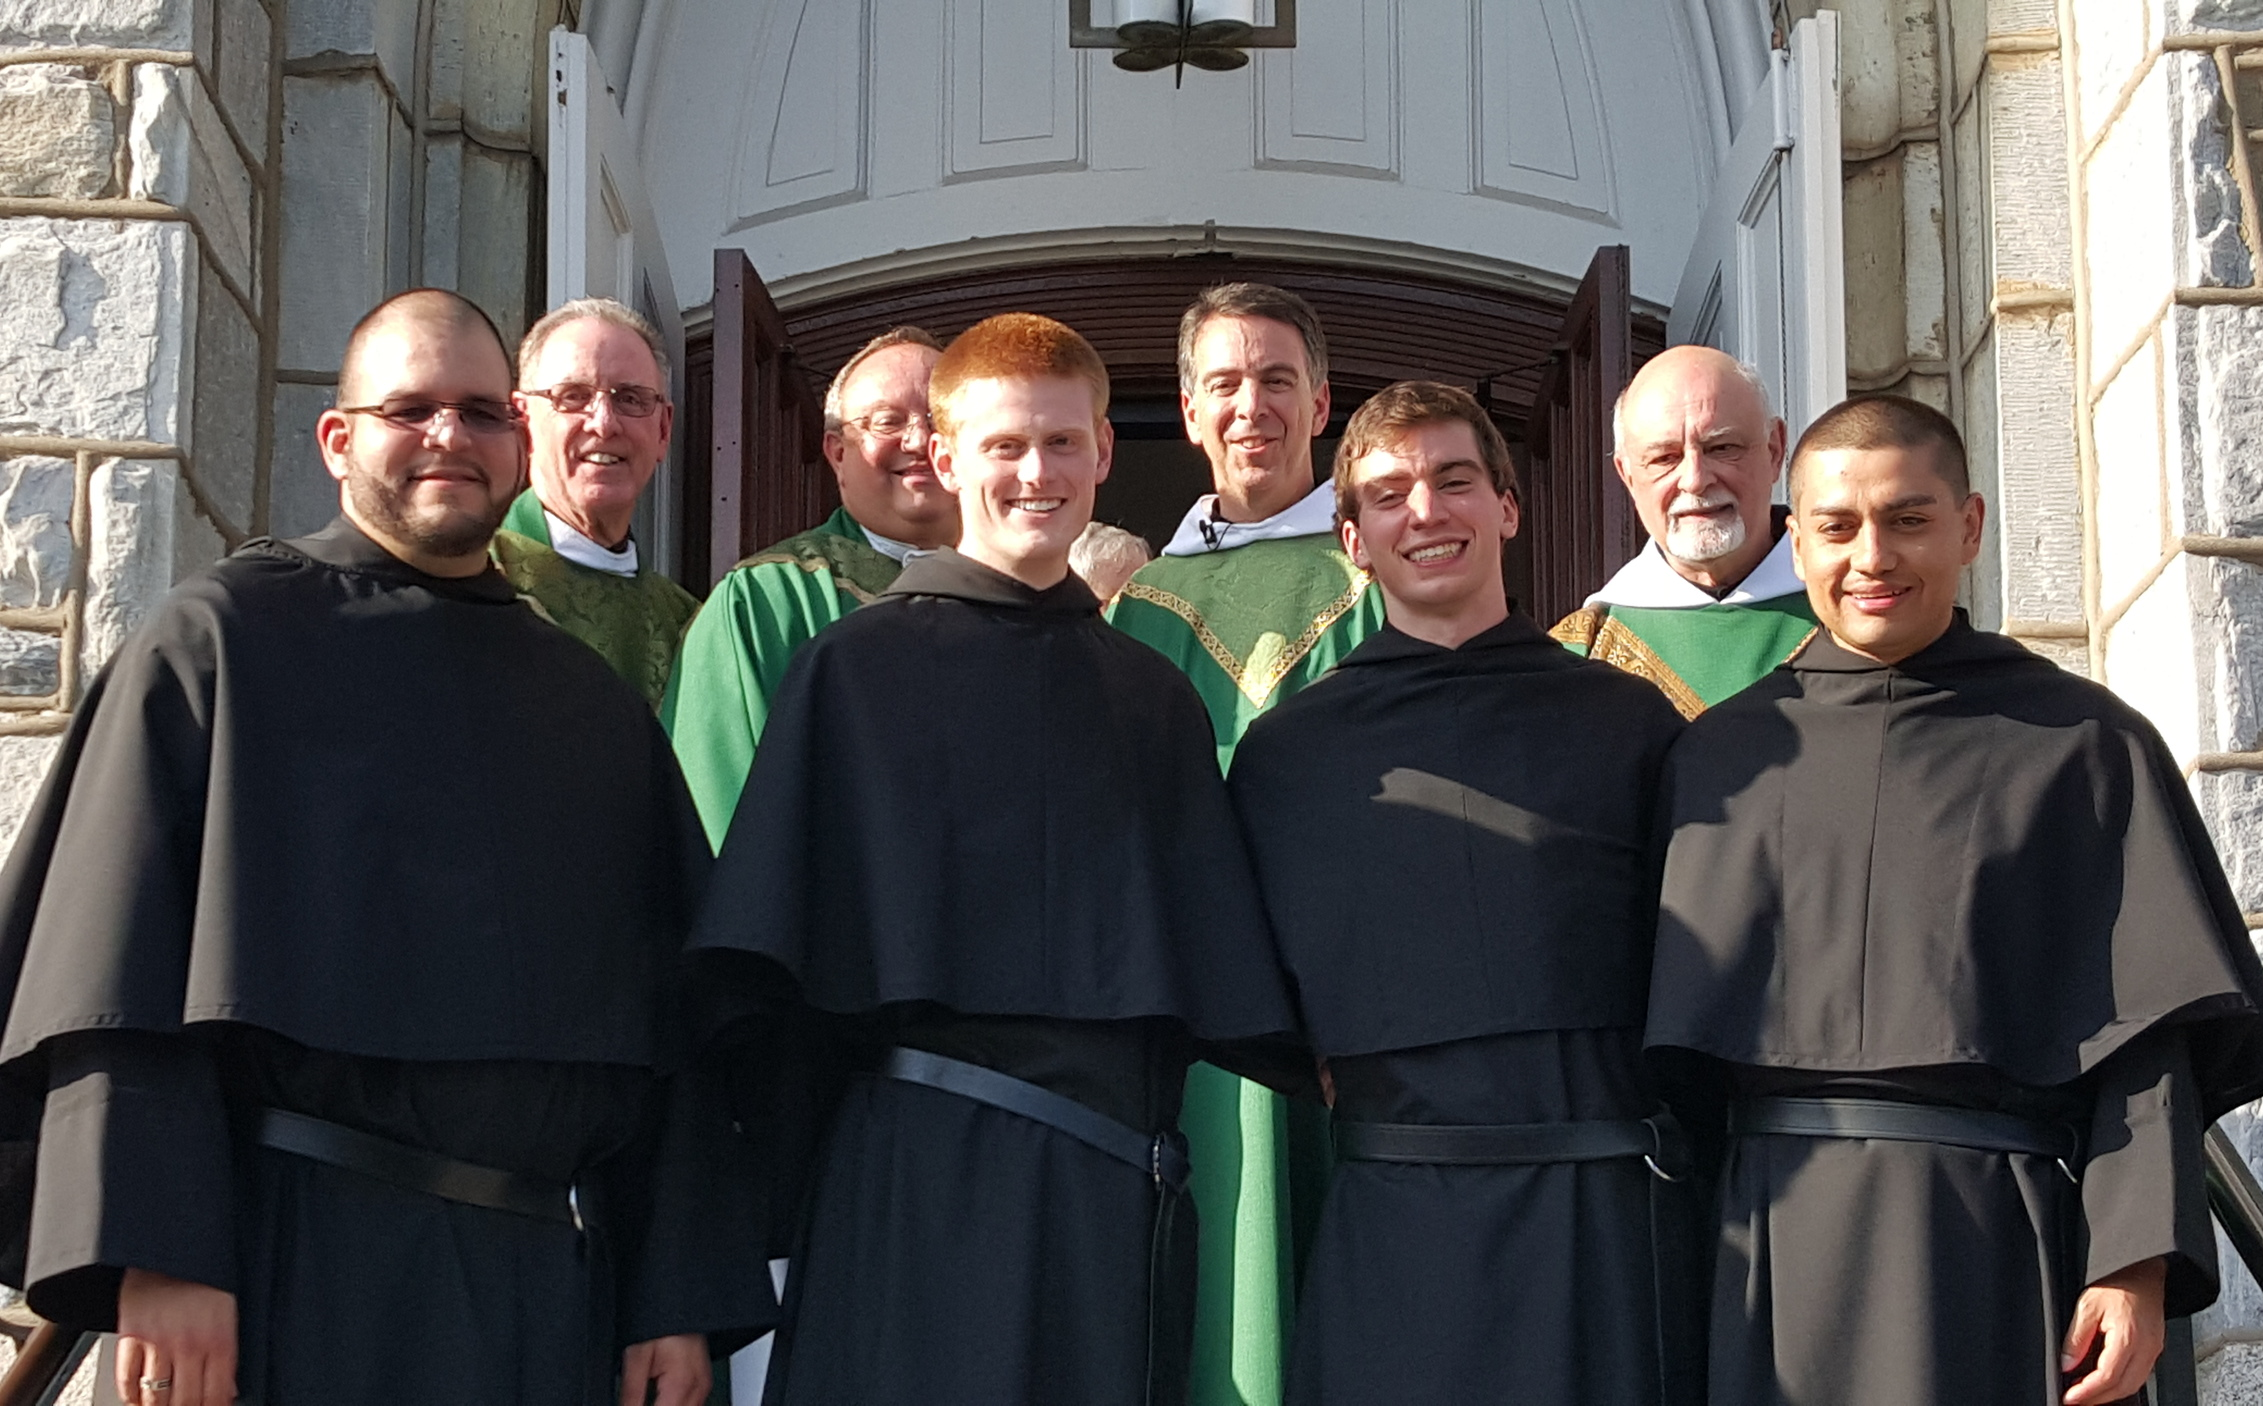 VILLANOVA, PA - We are proud to welcome the four newest professed Augustinians:   (front row, from left)  Bro. Carlos Miguel Rodríguez, OSA; Bro. Jack Tierney, OSA; Bro. Jimmy White, OSA; and Bro Javier Aguilar, OSA.  Principal concelebrants of the event:   (back row, from left)  Very Rev. Kevin C. Mullins, O.S.A.; Very Rev. Bernard C. Scianna, O.S.A.; Very Rev. Joseph Farrell, O.S.A.; and Very Rev. Michael F. DiGregorio, O.S.A.